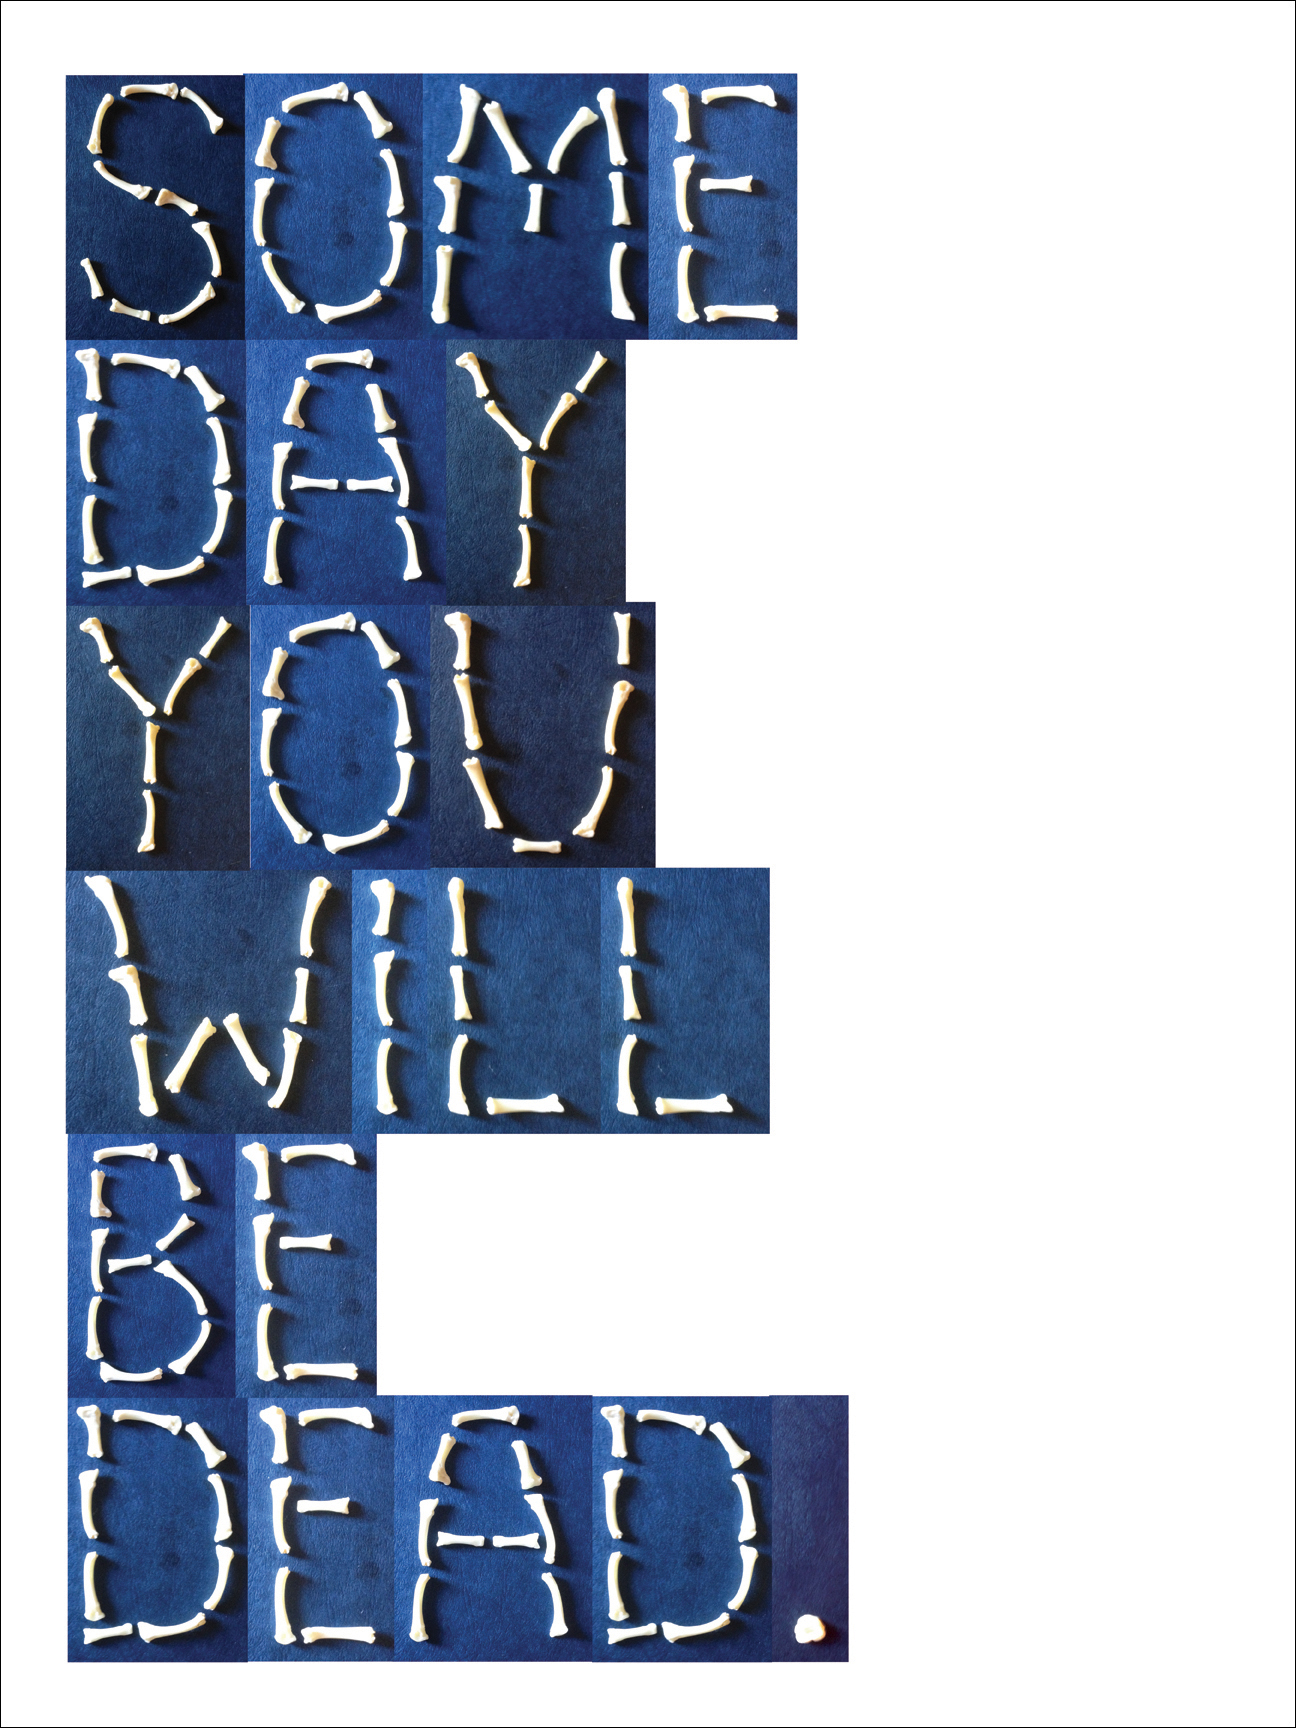 Some Day You Will Be Dead: The Alphabet In Real Bones